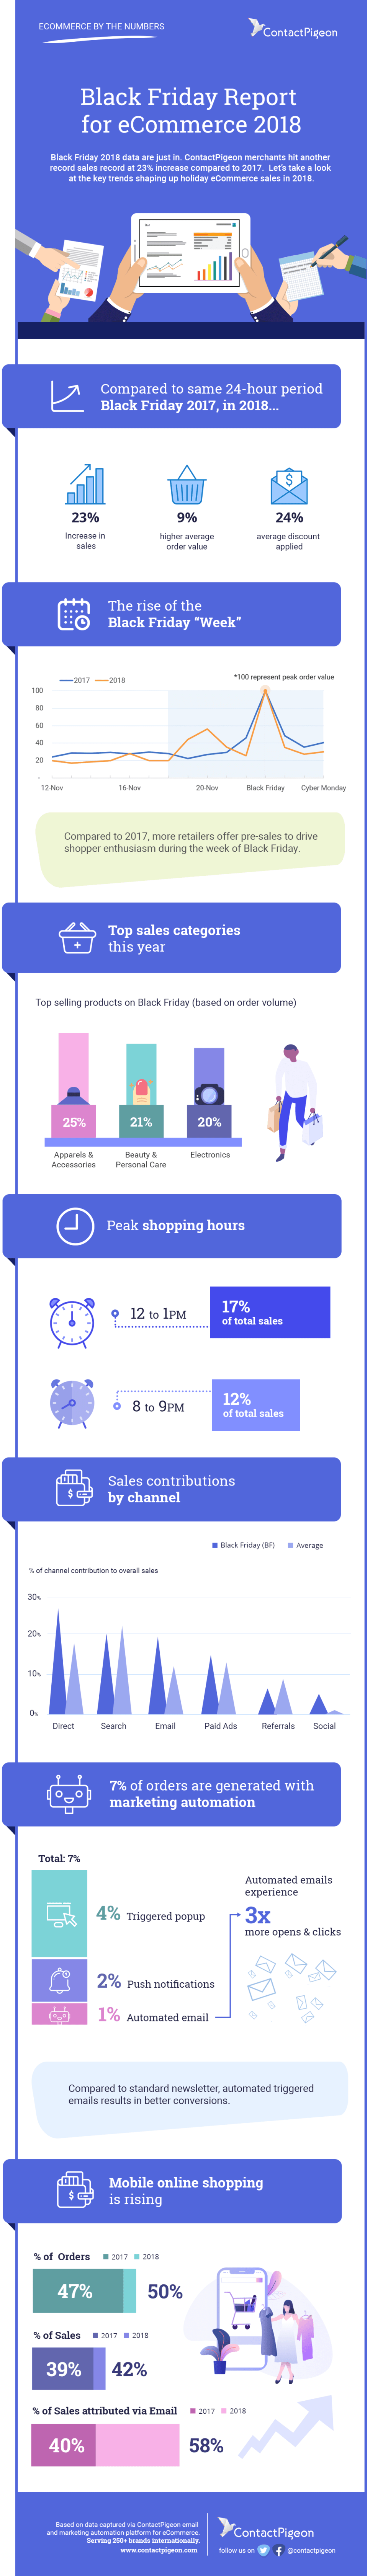 Black Friday Statistics and Best Practices